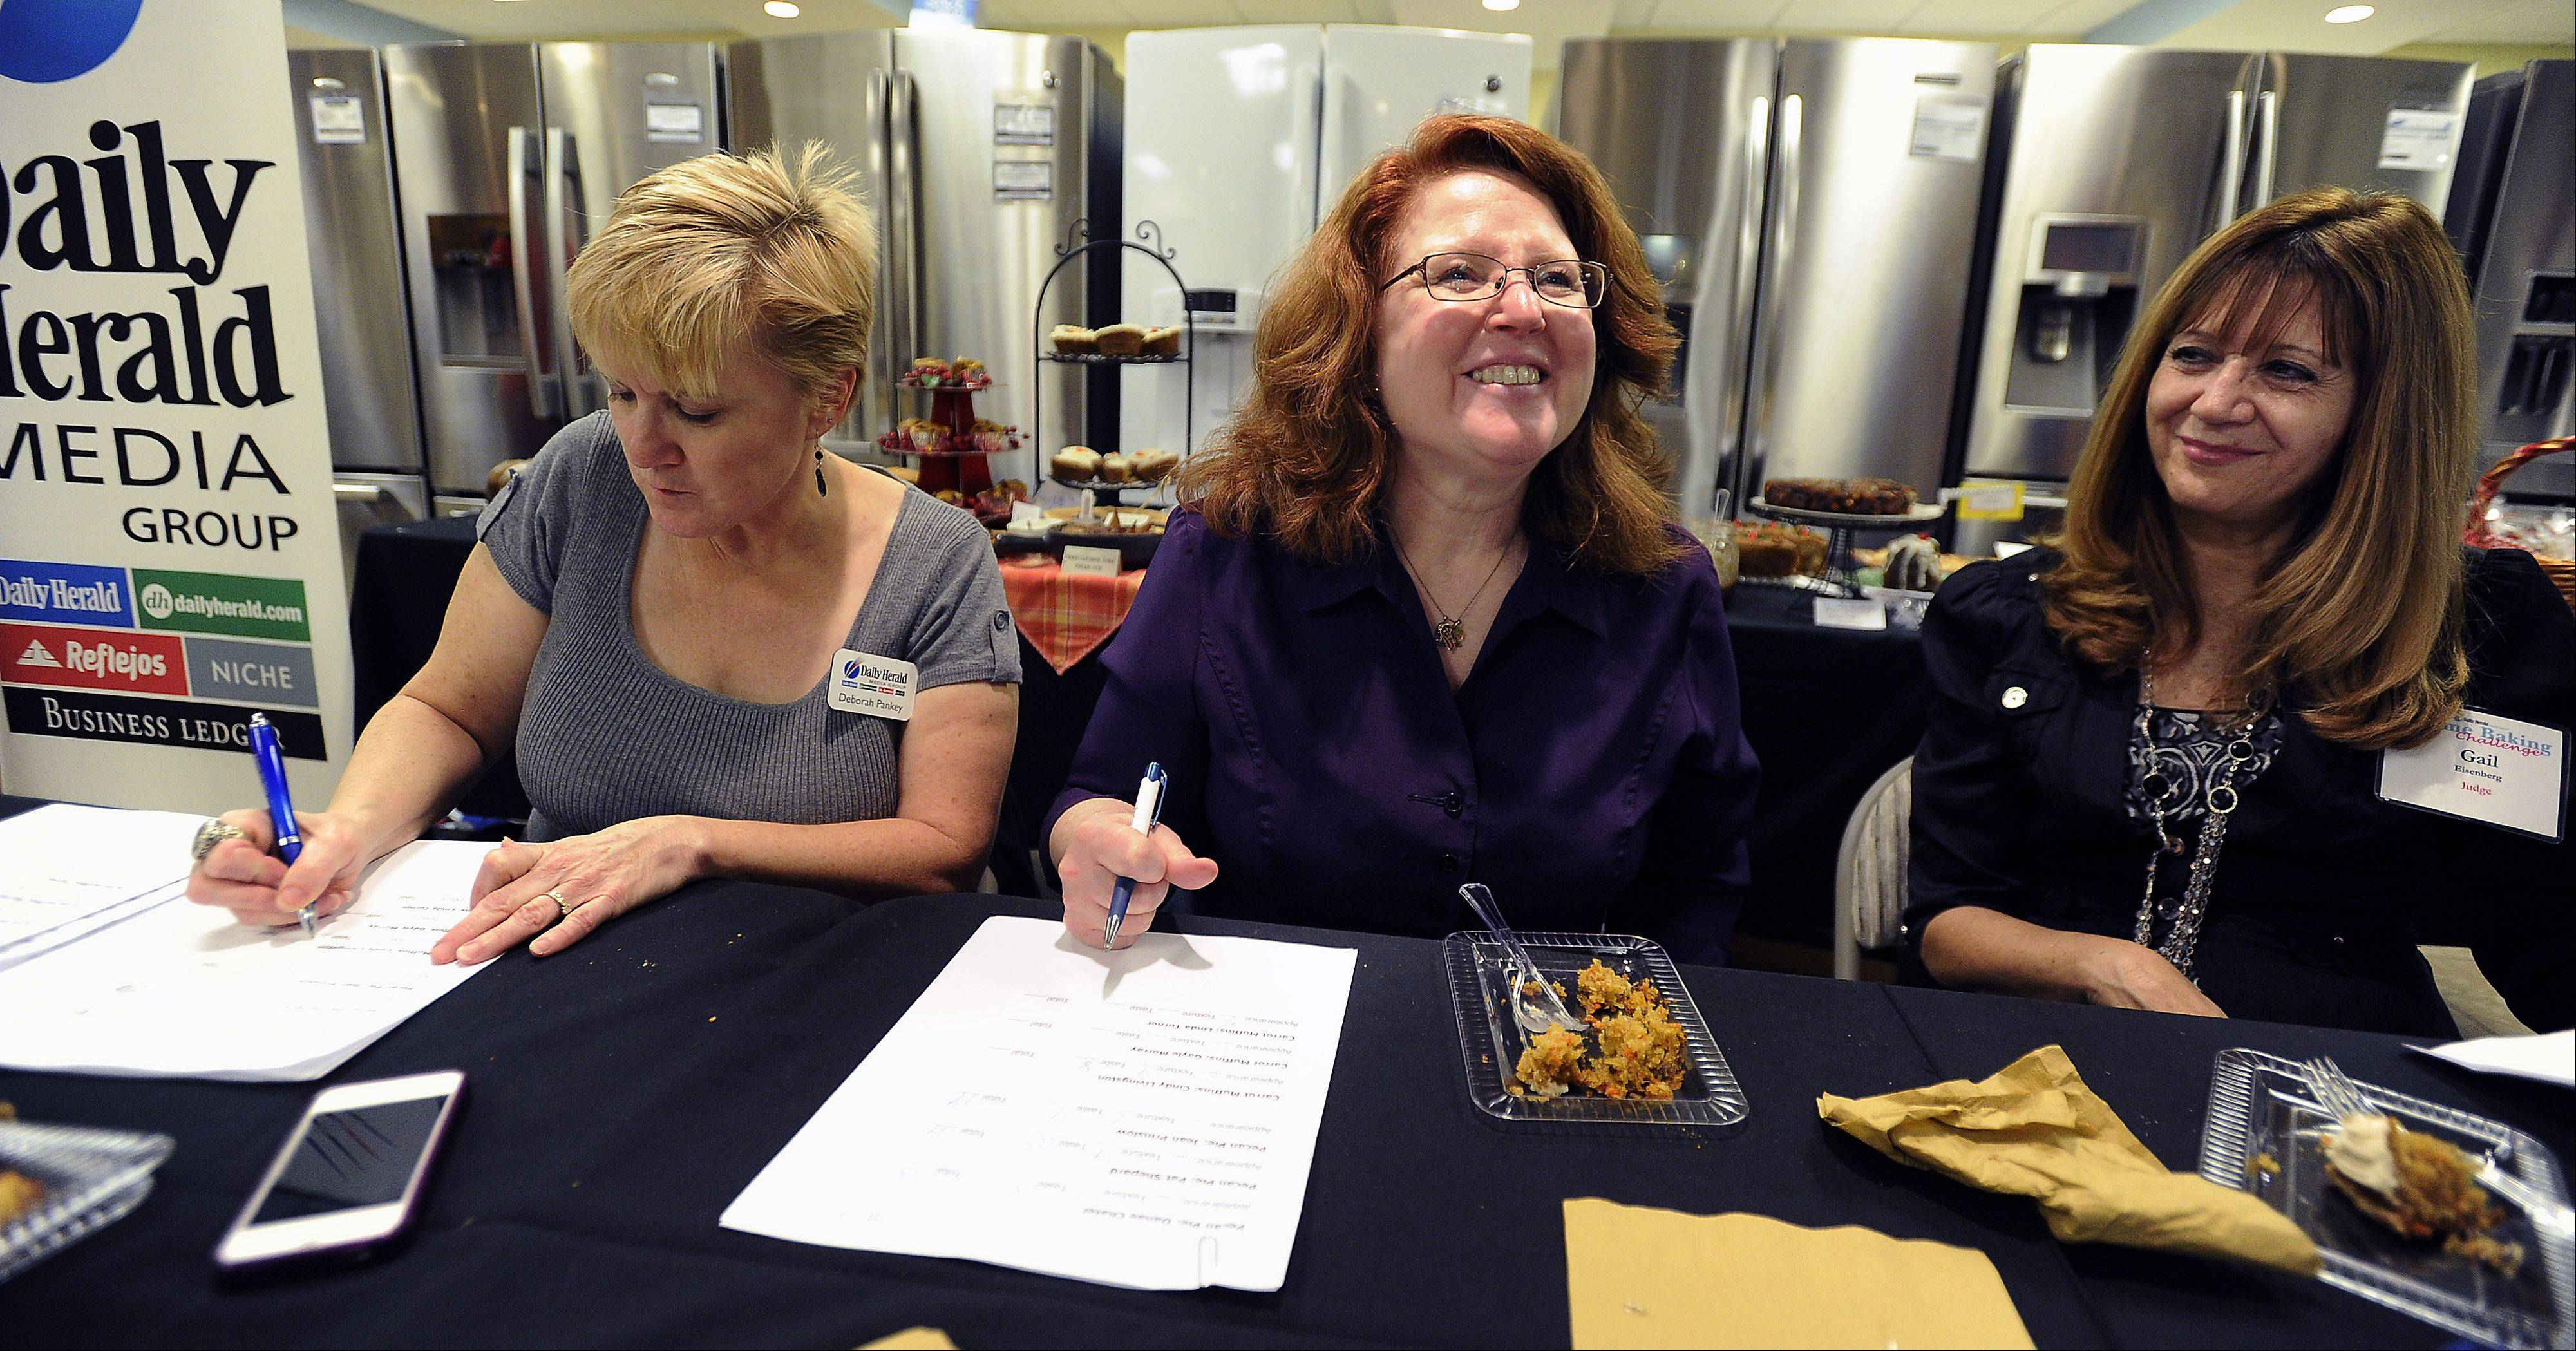 Daily Herald Food Editor Deborah Pankey tastes entries in the Daily Herald's Home Baking Challenge along with Baking Secrets columnist Annie Overboe and Gail Eisenberg of Gail's Brownie's in Buffalo Grove.